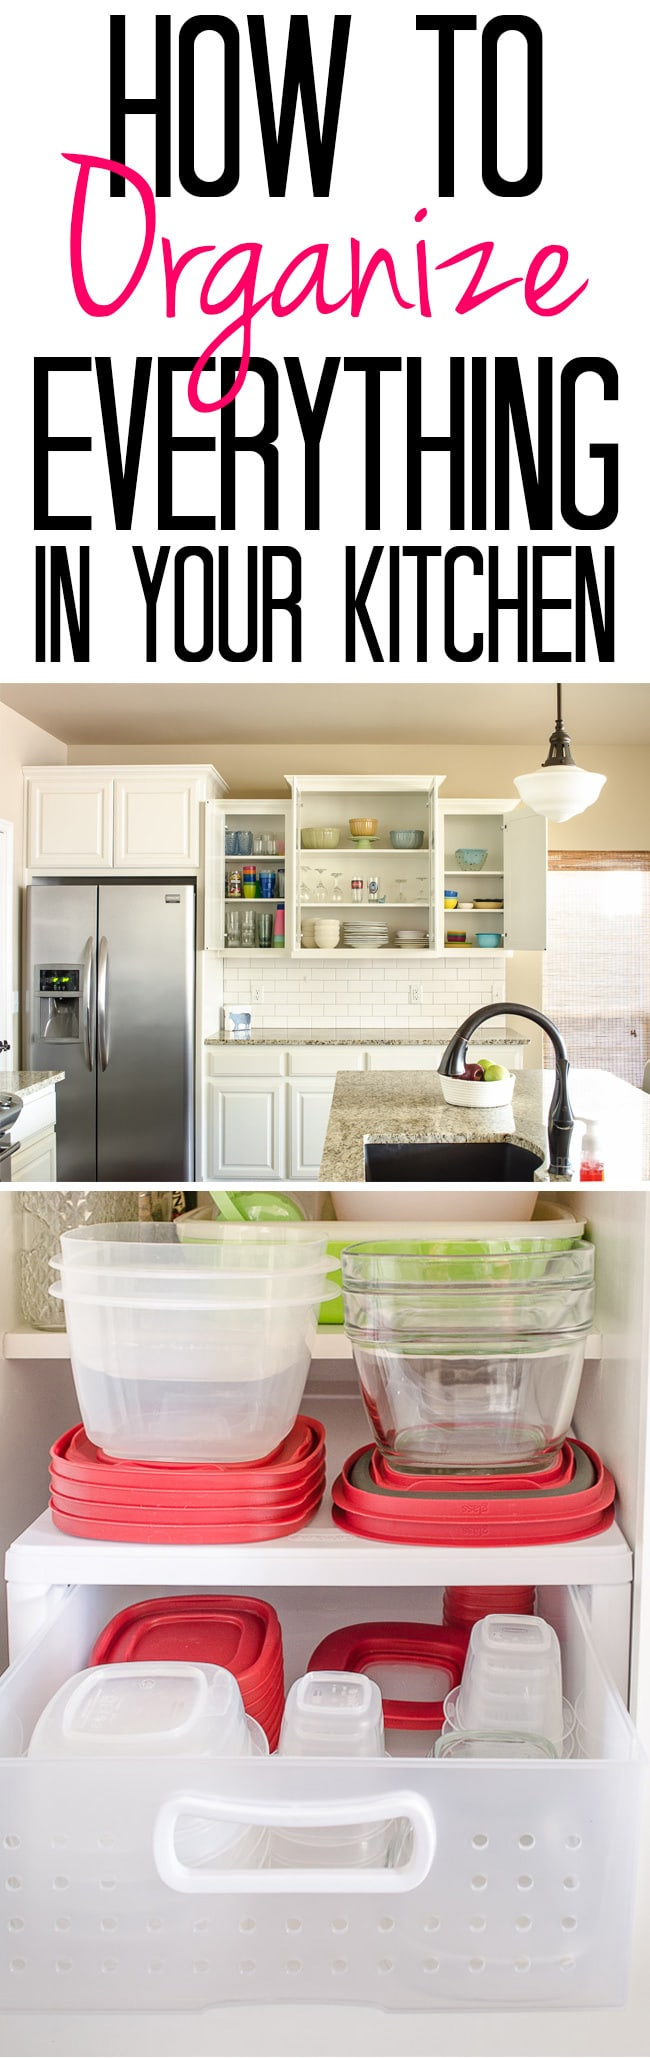 how should i organize my kitchen how to organize everything in your kitchen polished habitat 8483